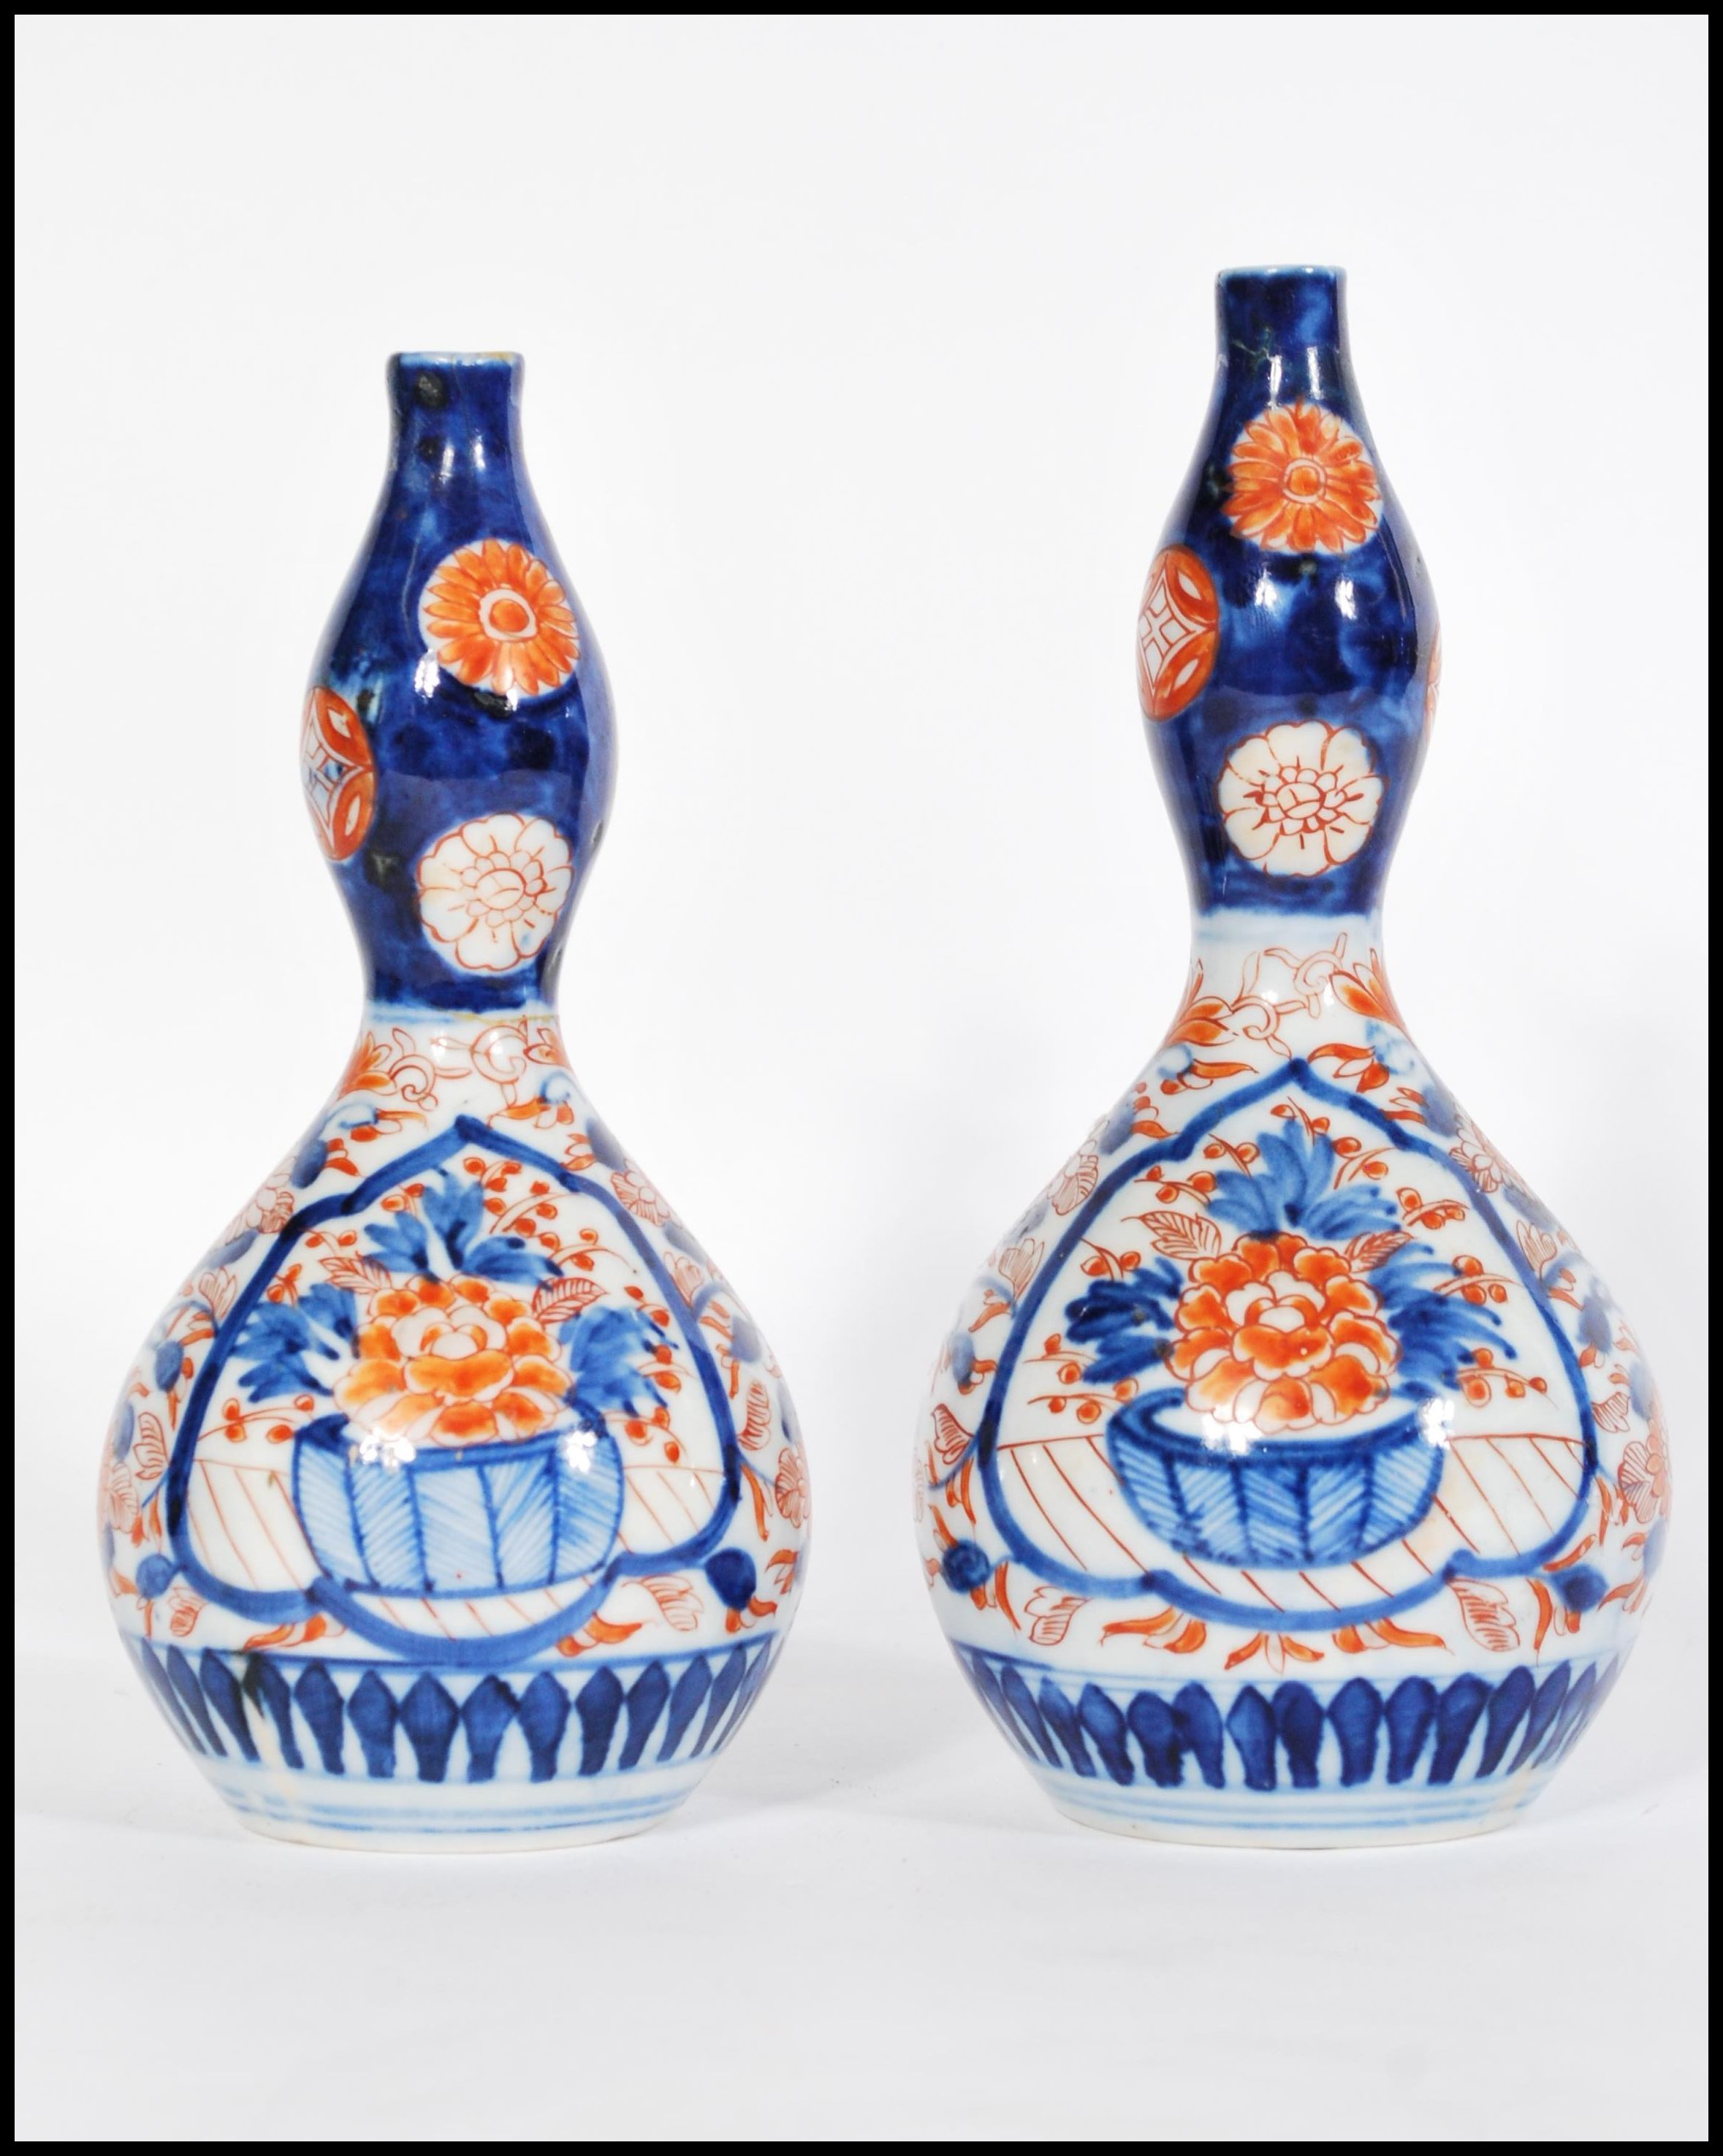 Lot 33 - A pair of 19th century Japanese Imari gourd vases having hand painted decoration.Measures 20cm-high